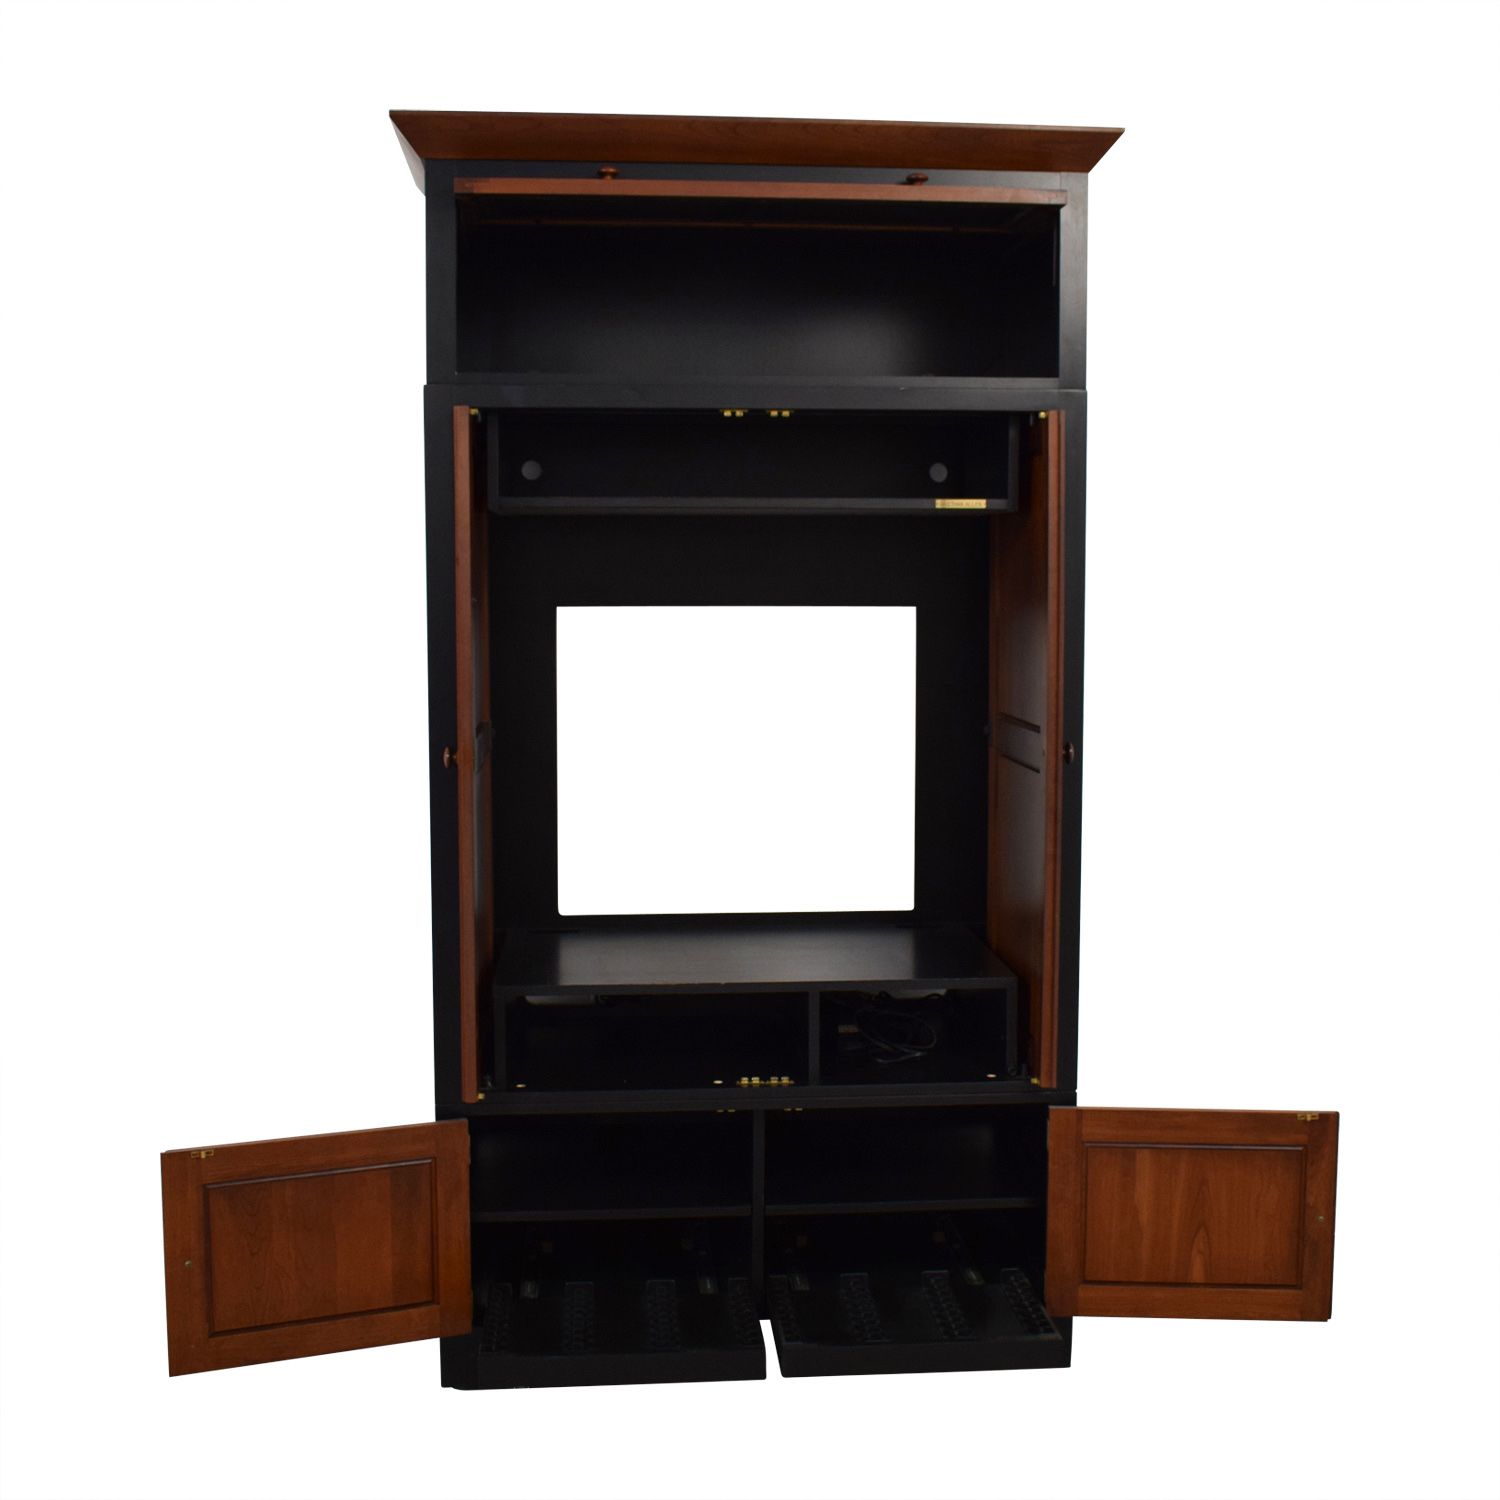 Ethan Allen Ethan Allen Wood Media Cabinet for sale